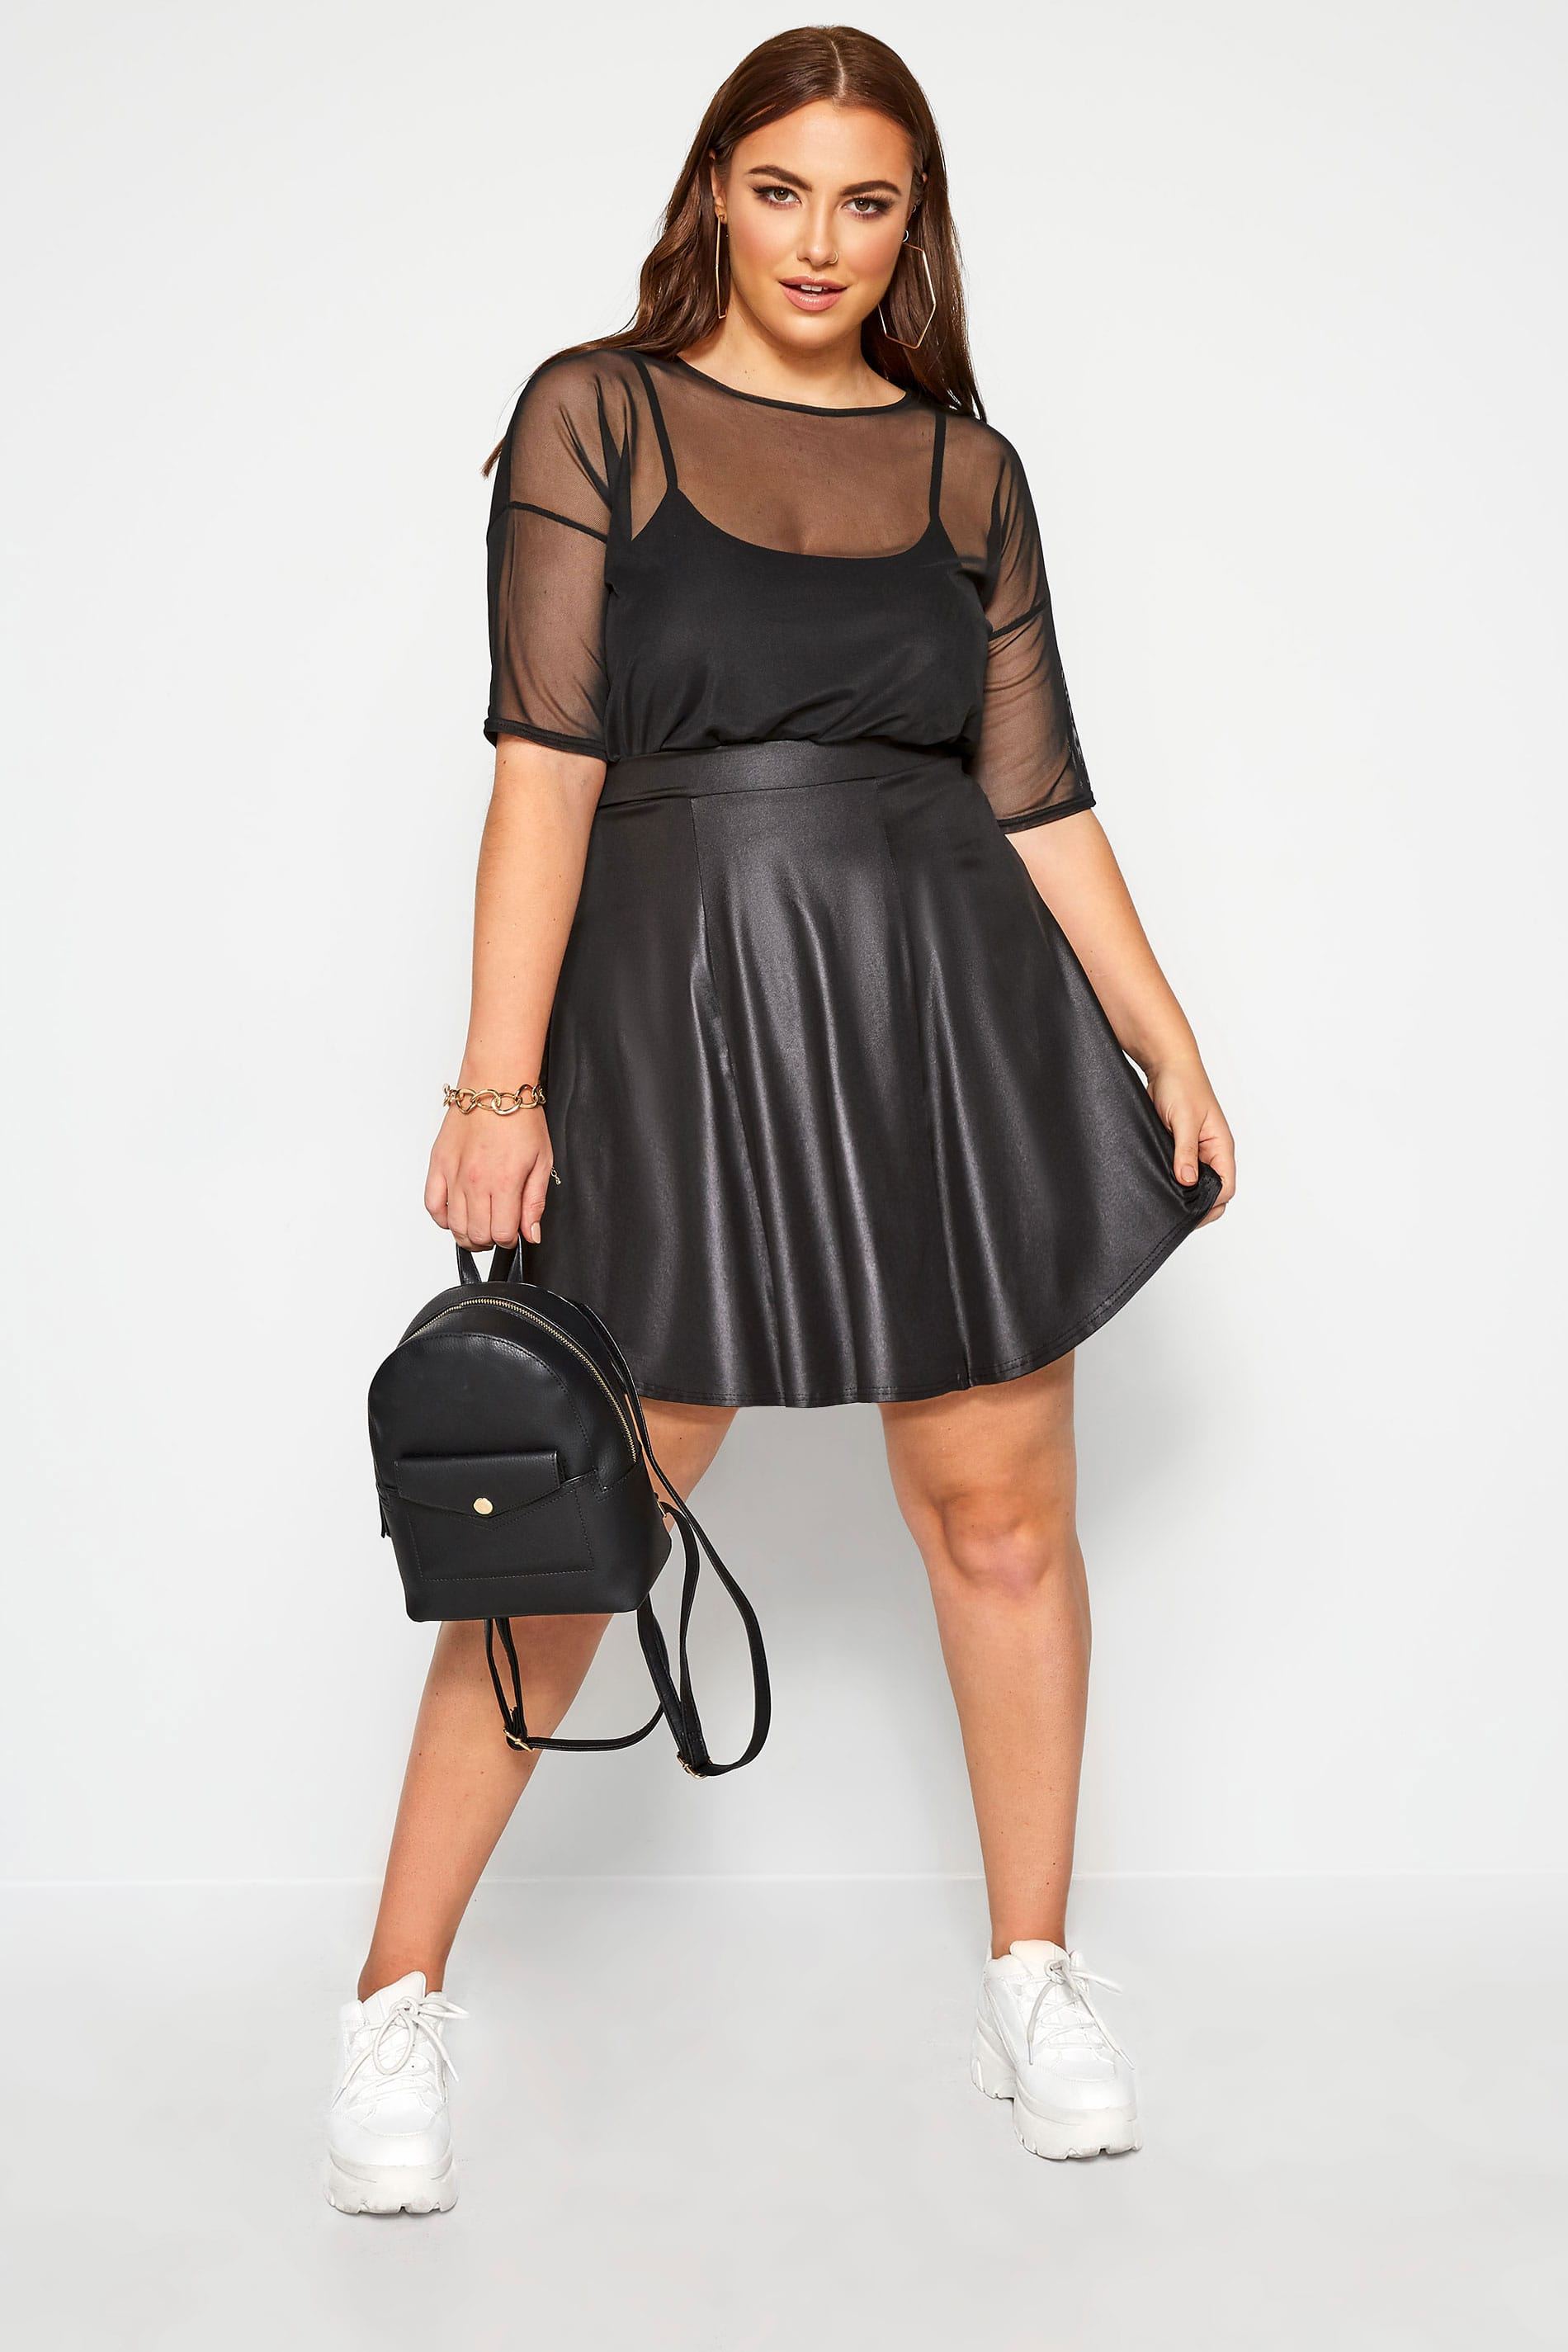 LIMITED COLLECTION Black Leather Look Skater Skirt